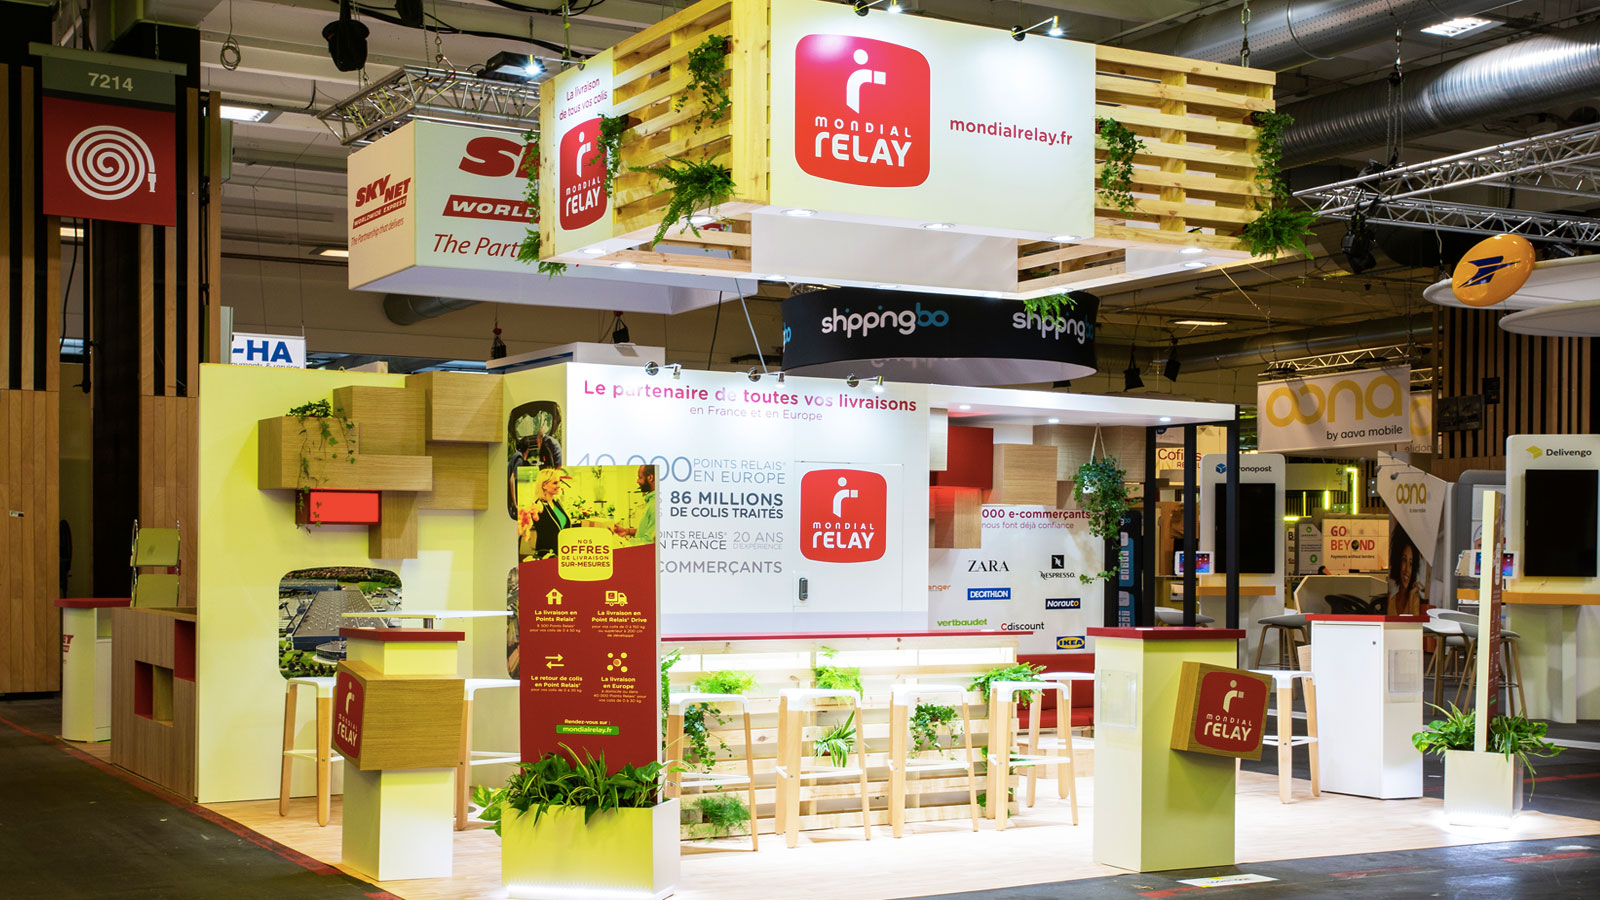 Stand-Design-MondialRelay-PRW-Square